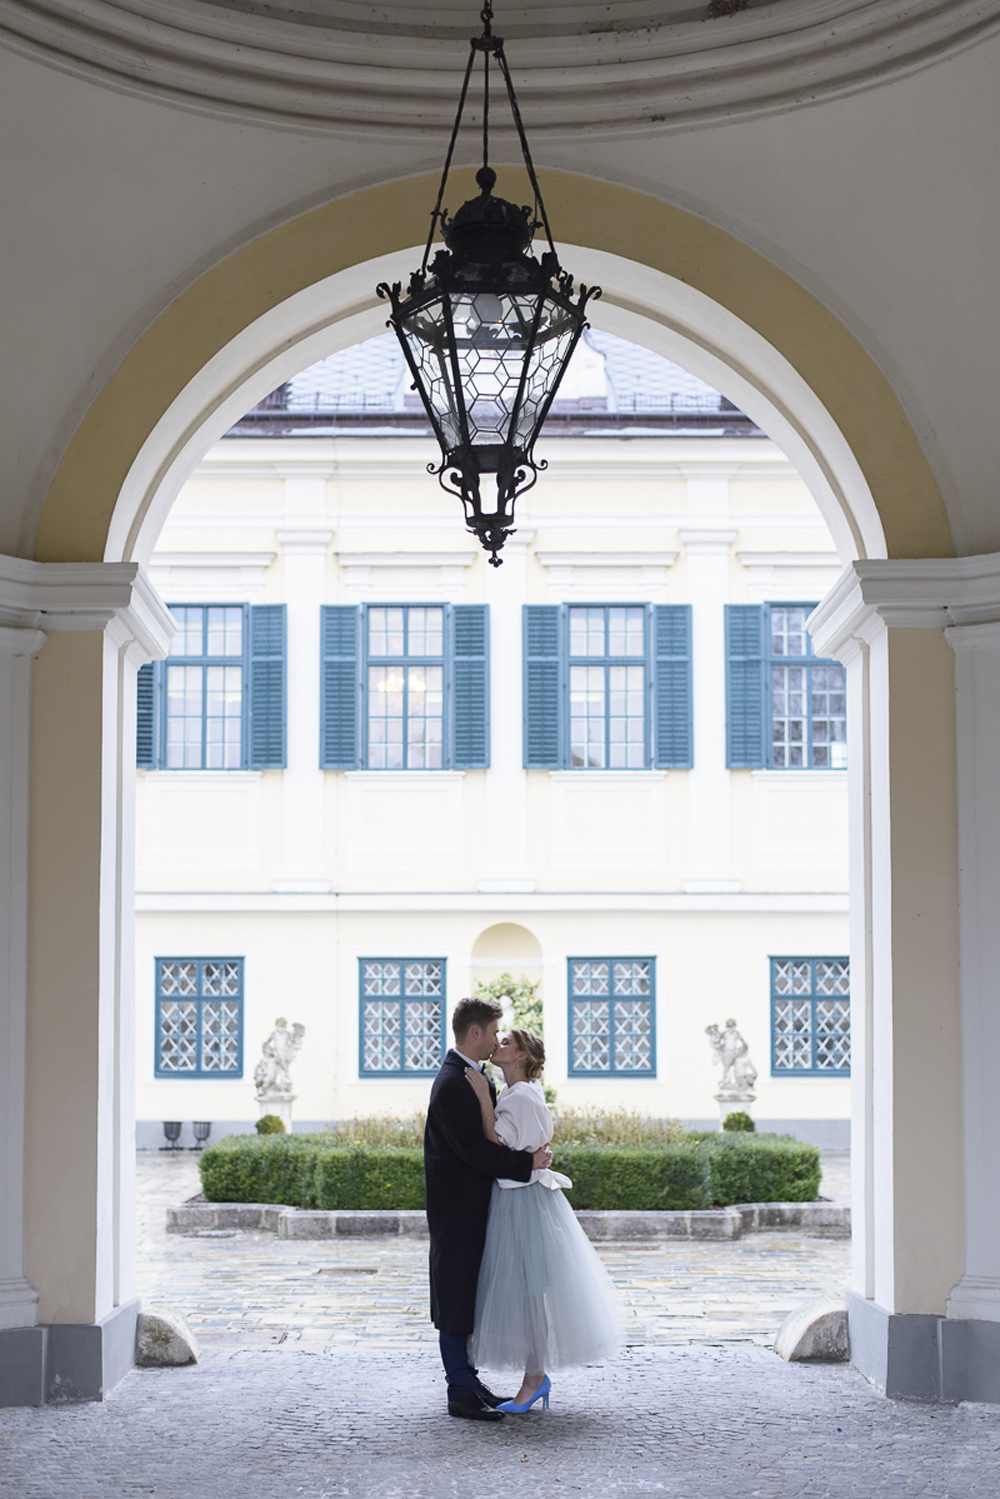 Wedding inspiration blue grey silver at Schloss Laudon Vienna Austria Barbara Wenz Photography